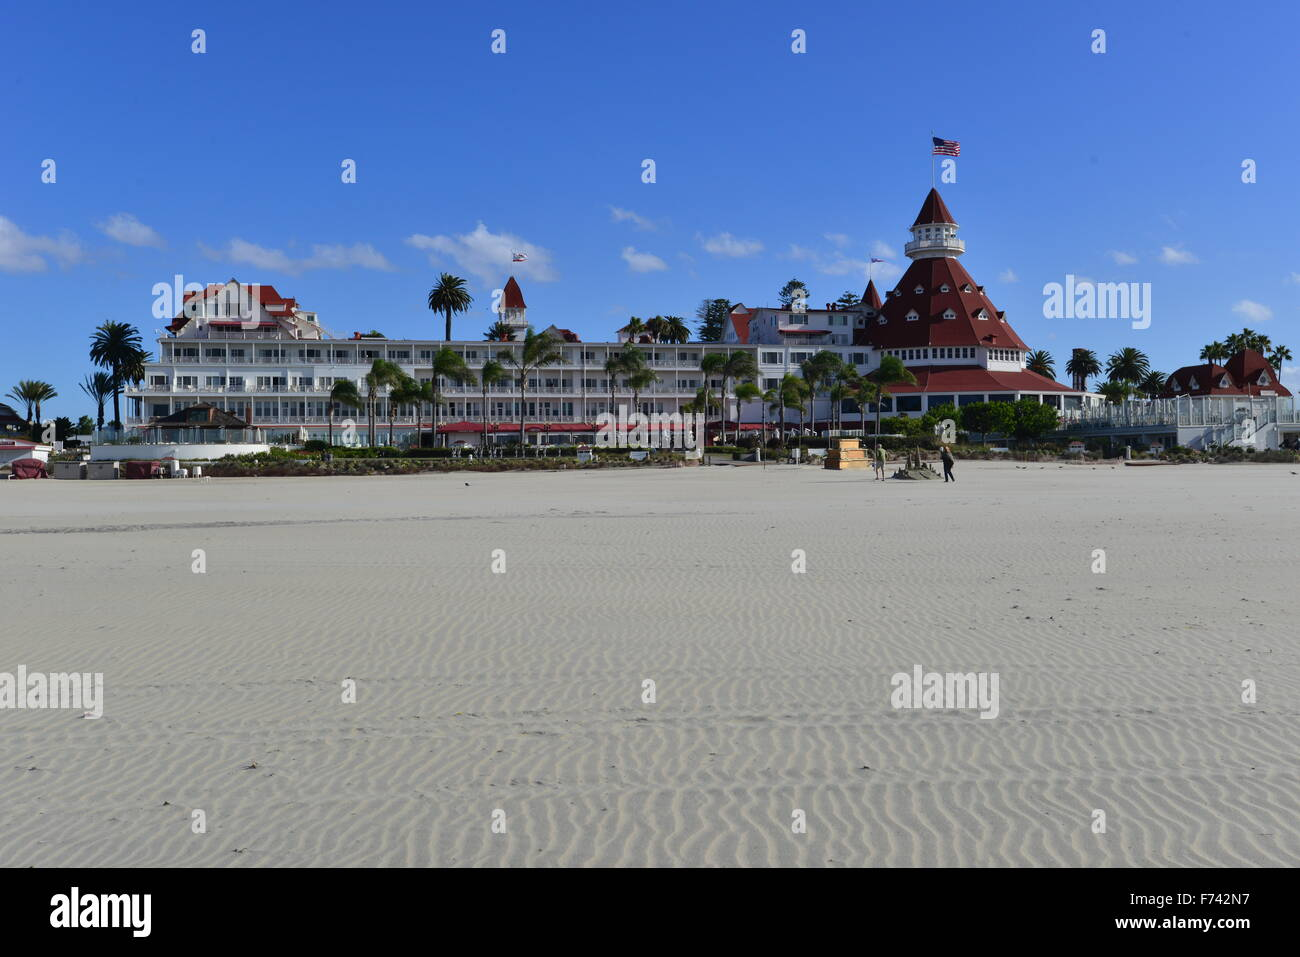 Hotel del Coronado  beach front hotel in the city of Coronado, - Stock Image